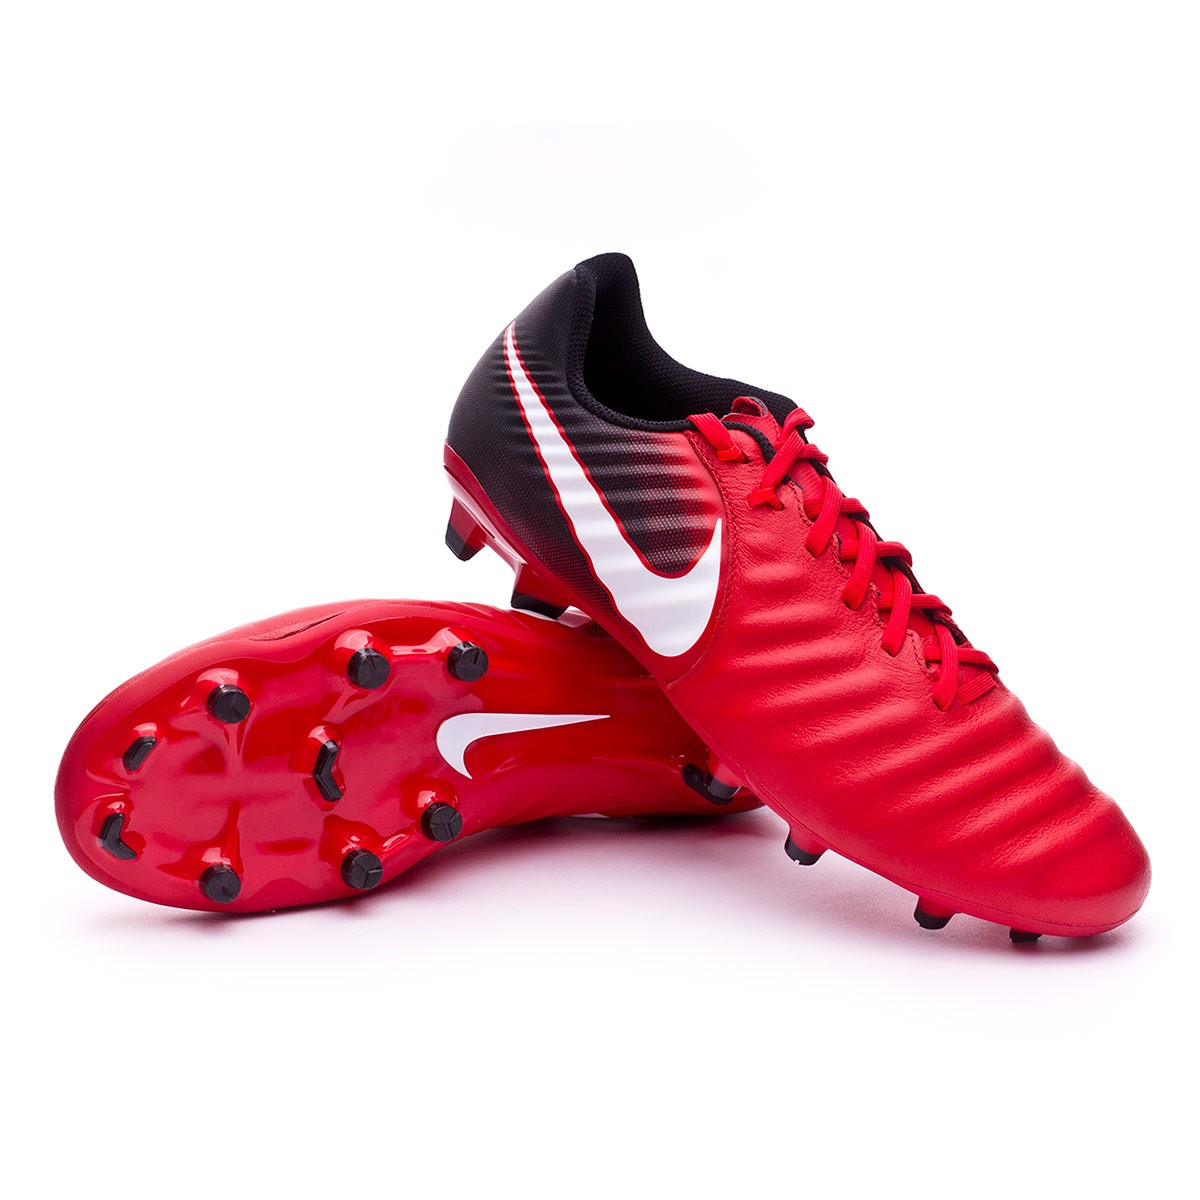 749da78b3ad9f Football Boots Nike Tiempo Ligera IV FG Black-White-University red ...